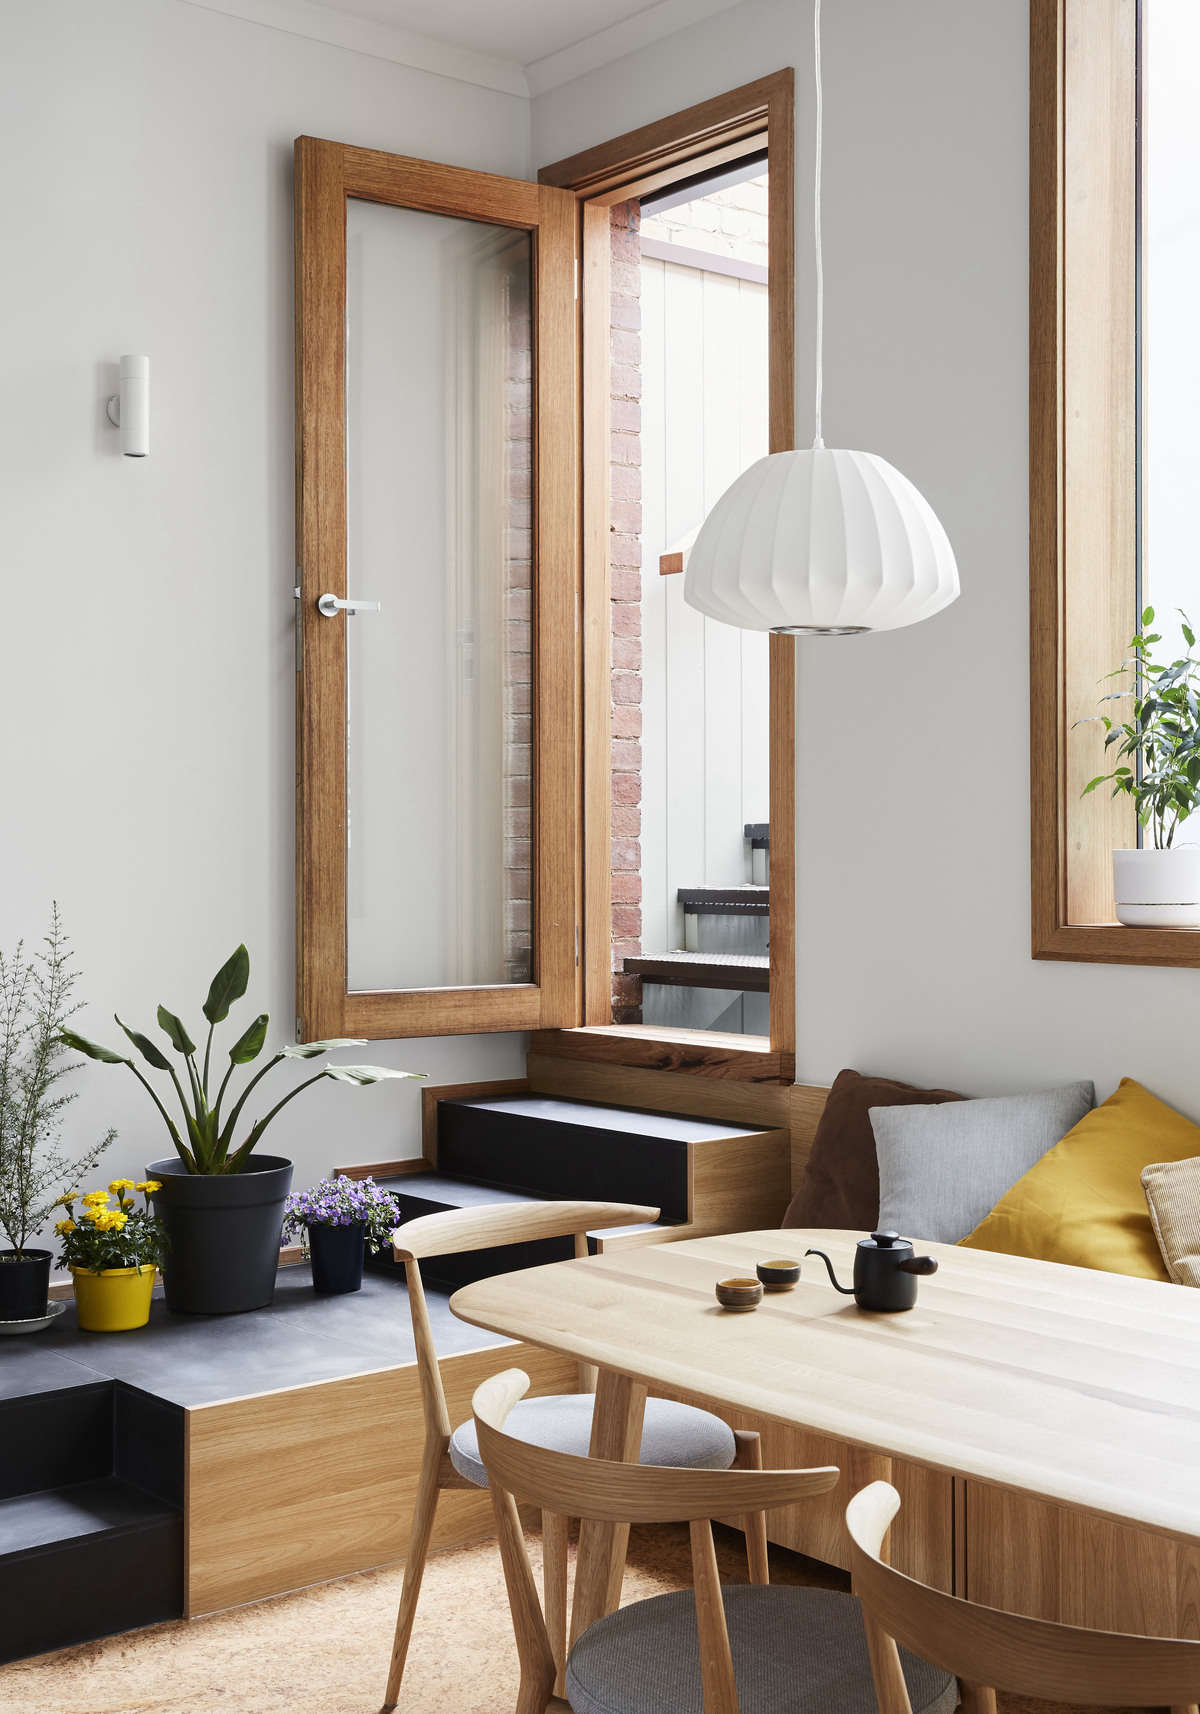 The dining table and chairs are from Japanese furniture store Apato, in Victoria.